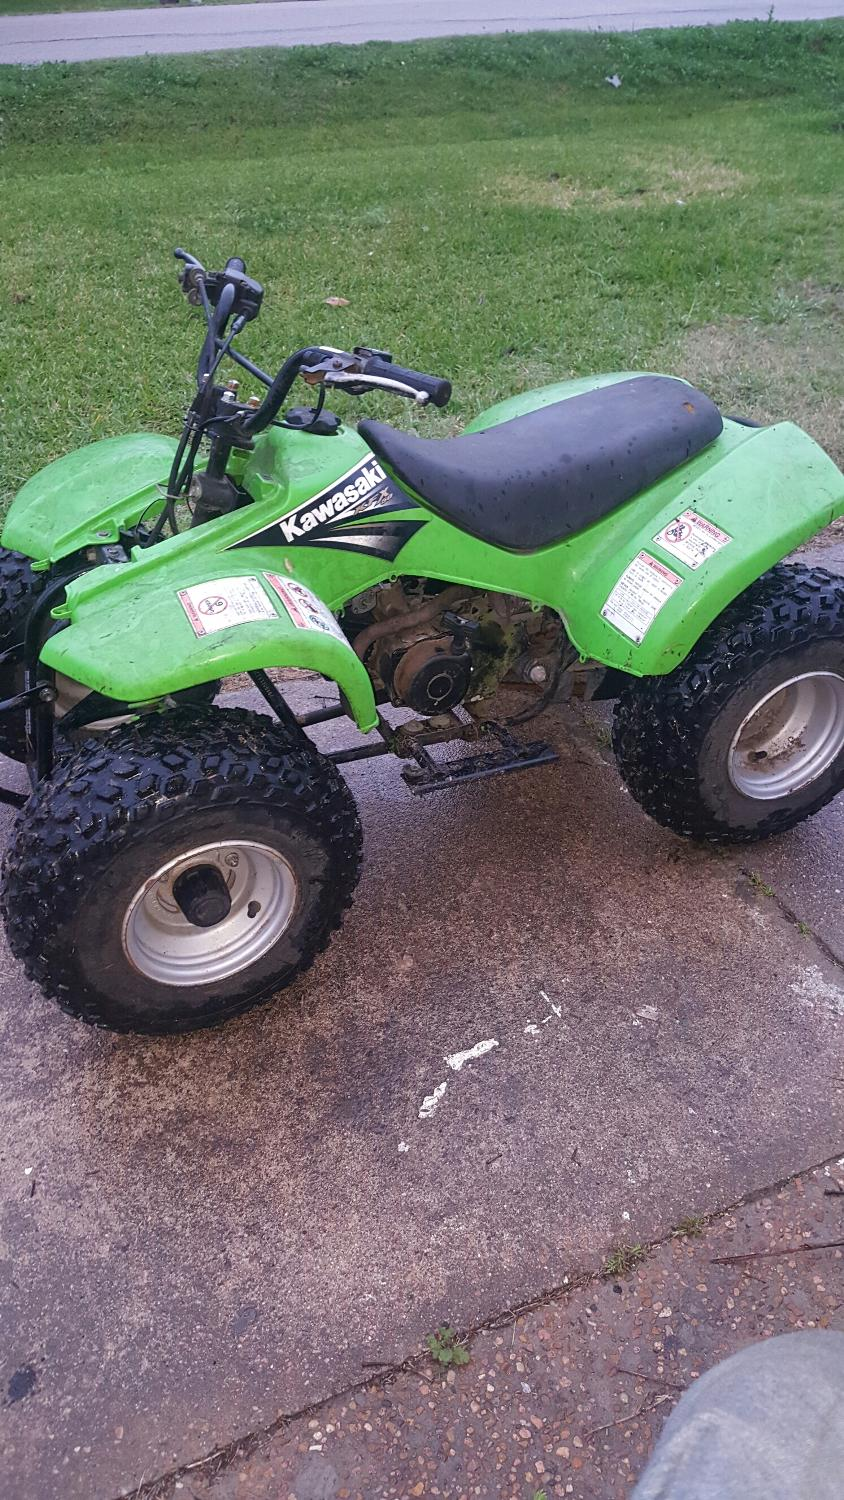 find more 05 kawasaki kfx50 kids 4 wheeler for sale at up to 90 off brazoria county tx. Black Bedroom Furniture Sets. Home Design Ideas